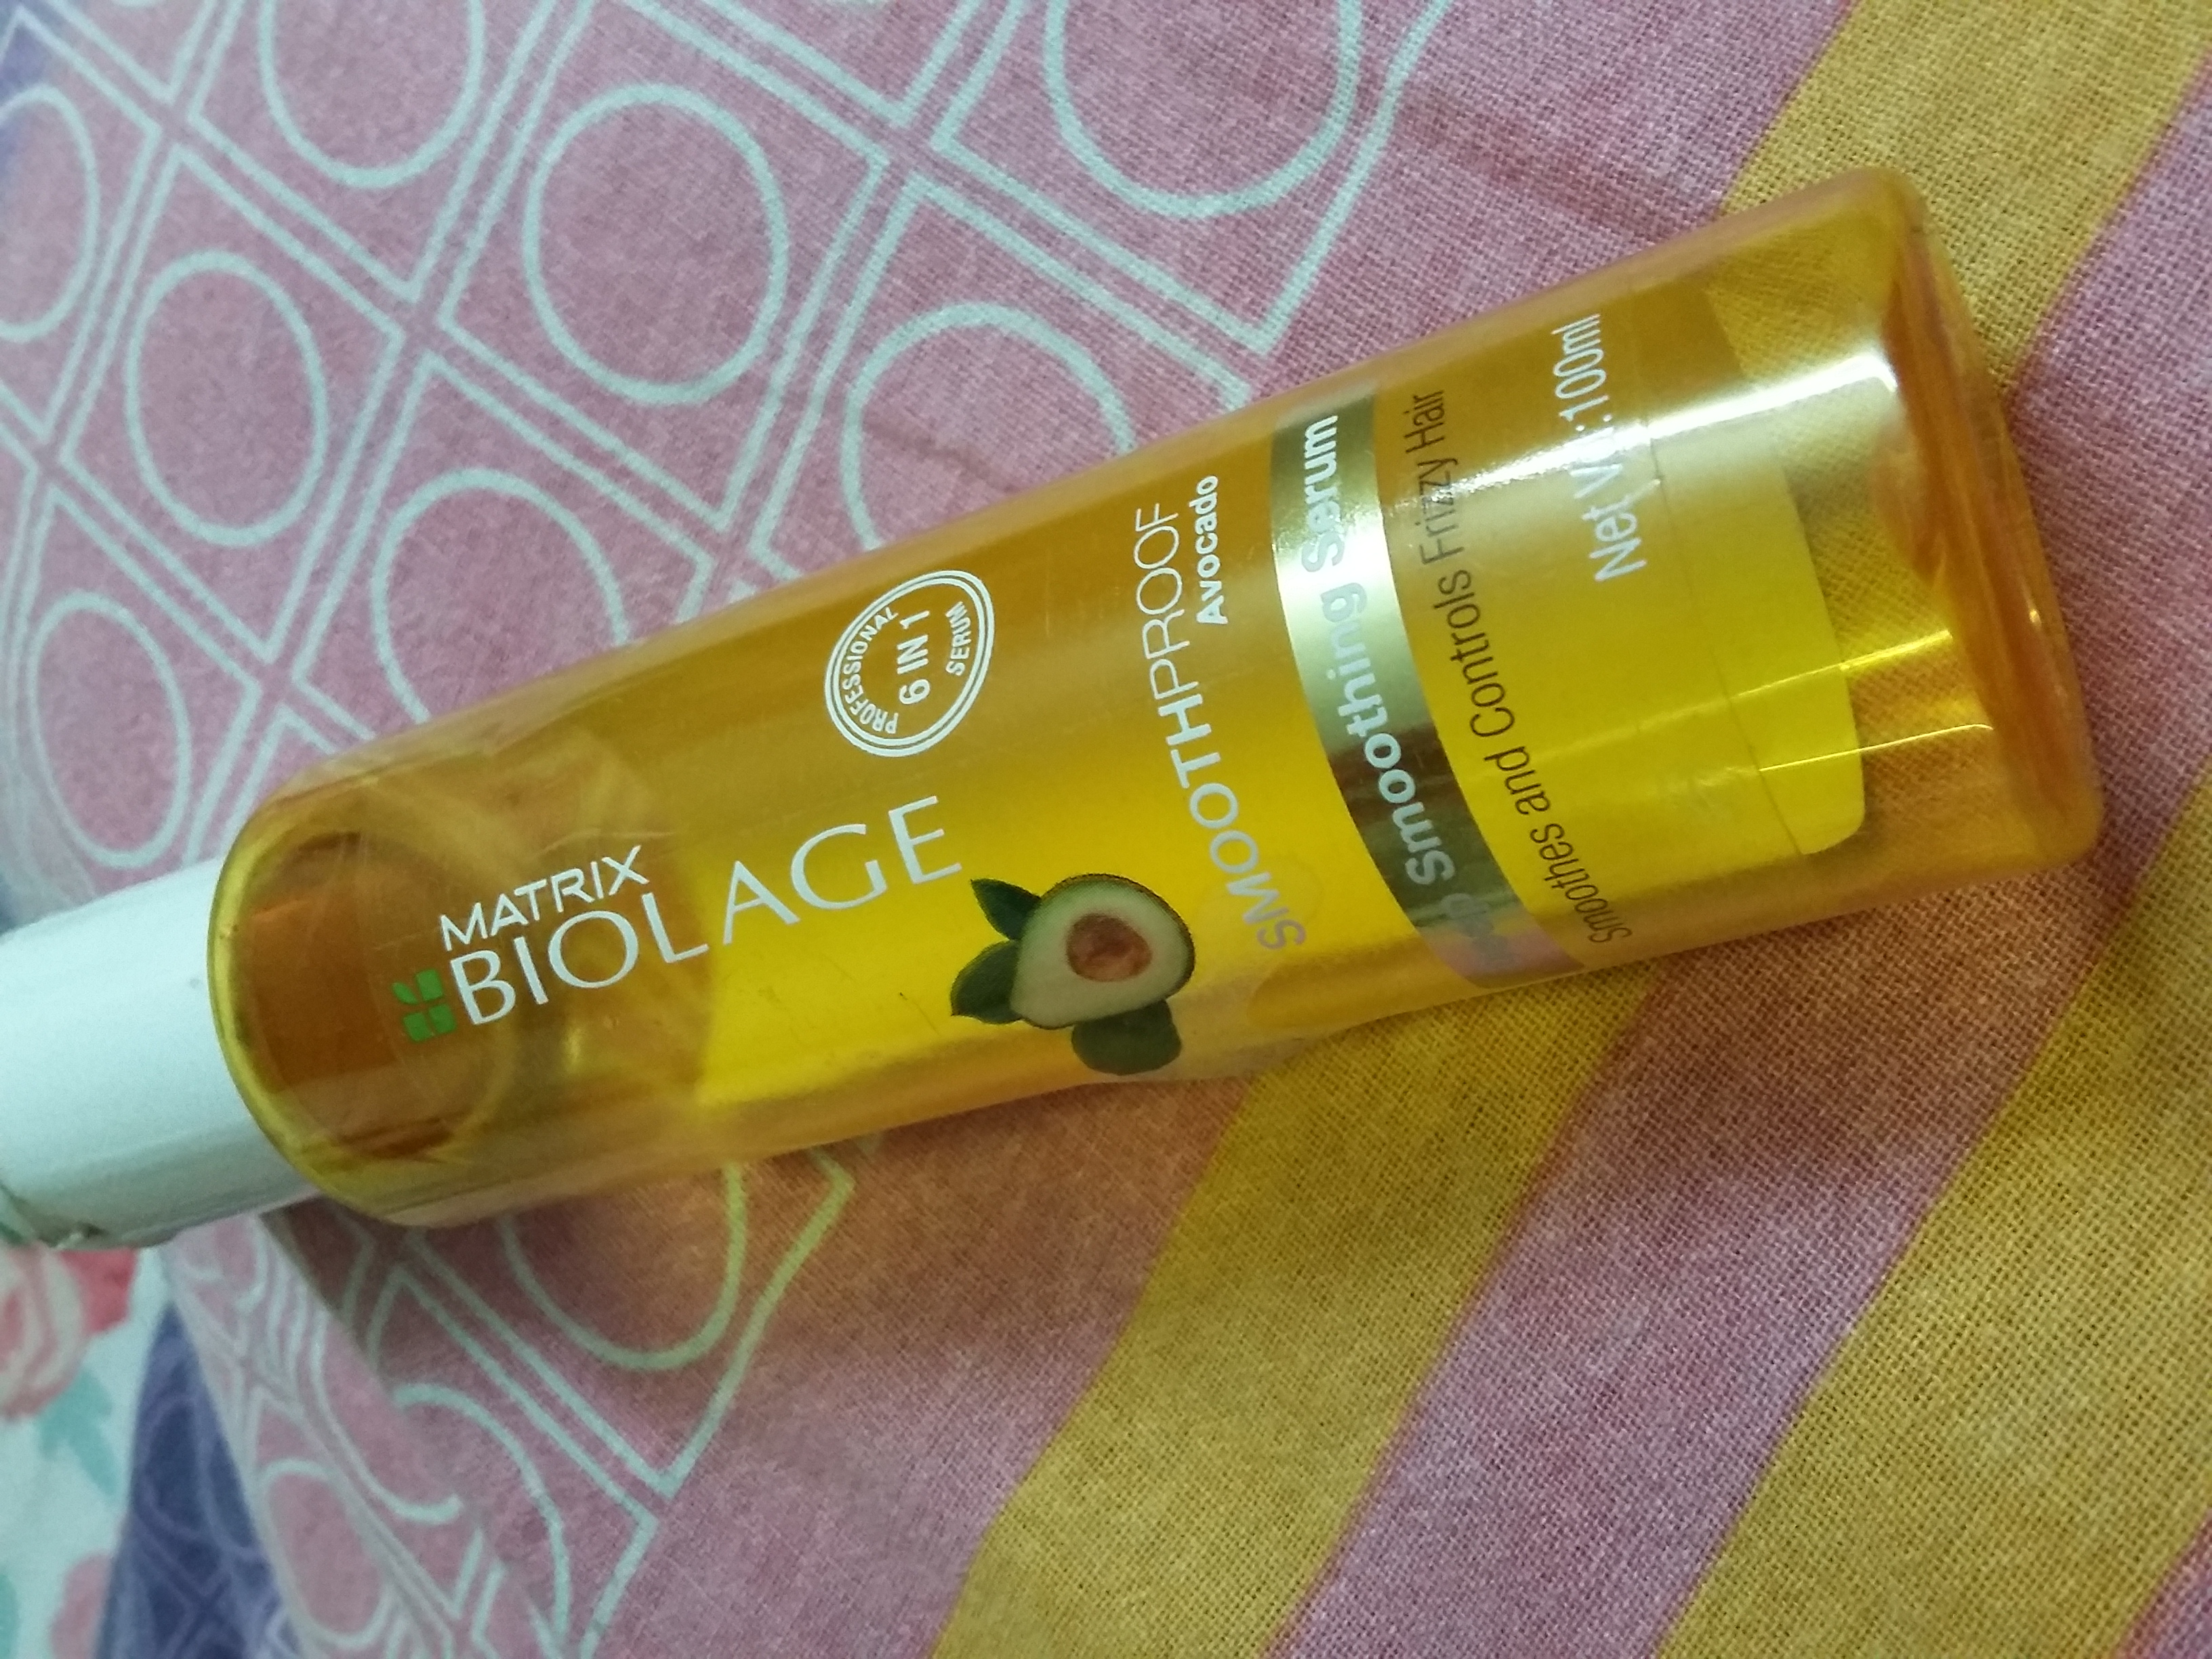 Matrix Biolage 6 In 1 Smooth Proof Deep Smoothing Serum-Keeps hair frizz free-By sobia_saman1-2